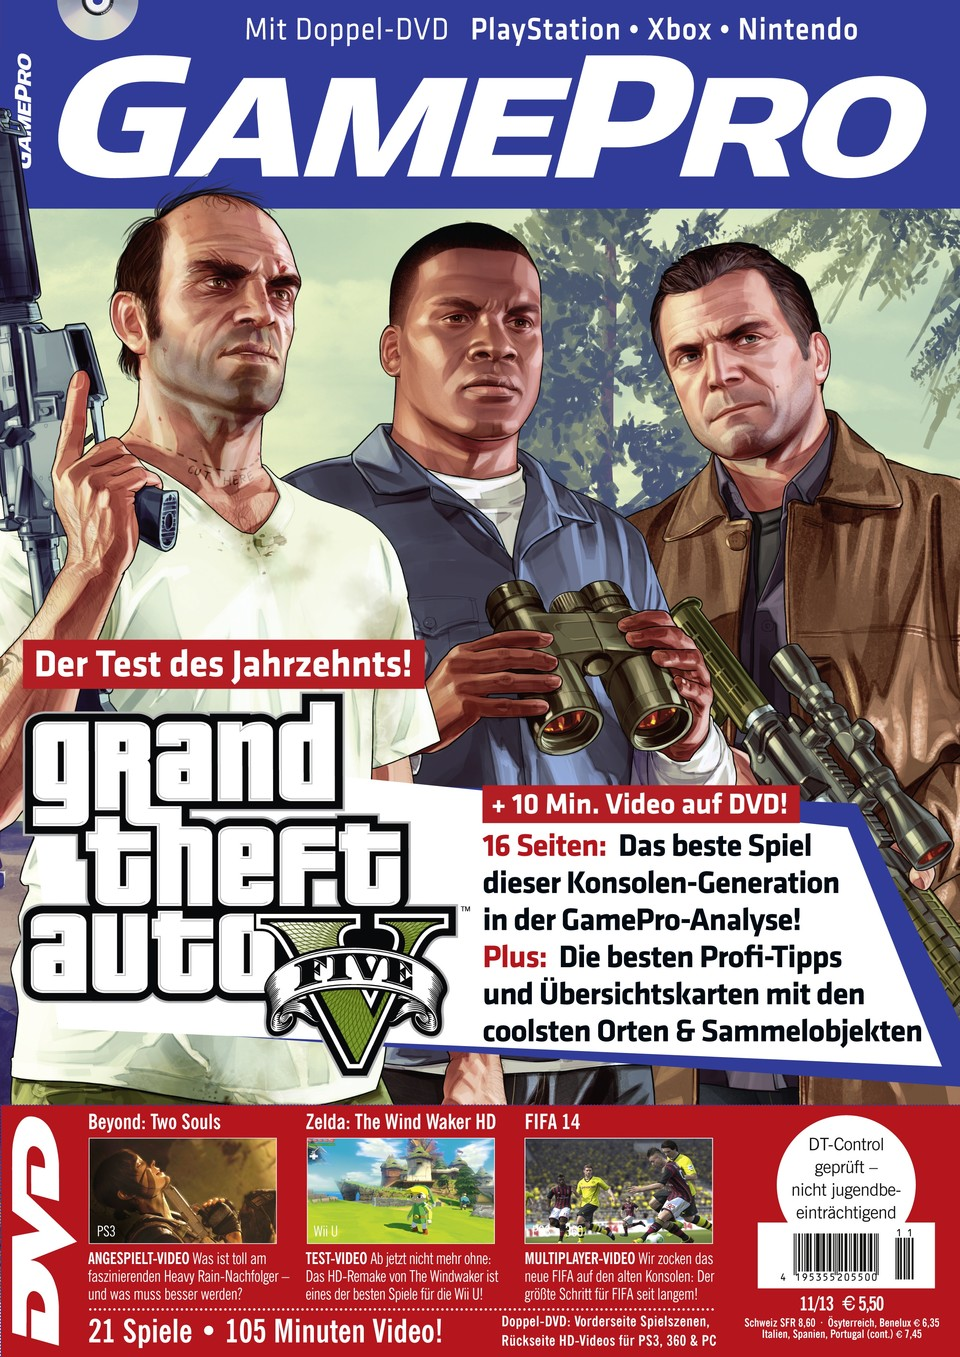 Highlightbild GamePro 11/2013